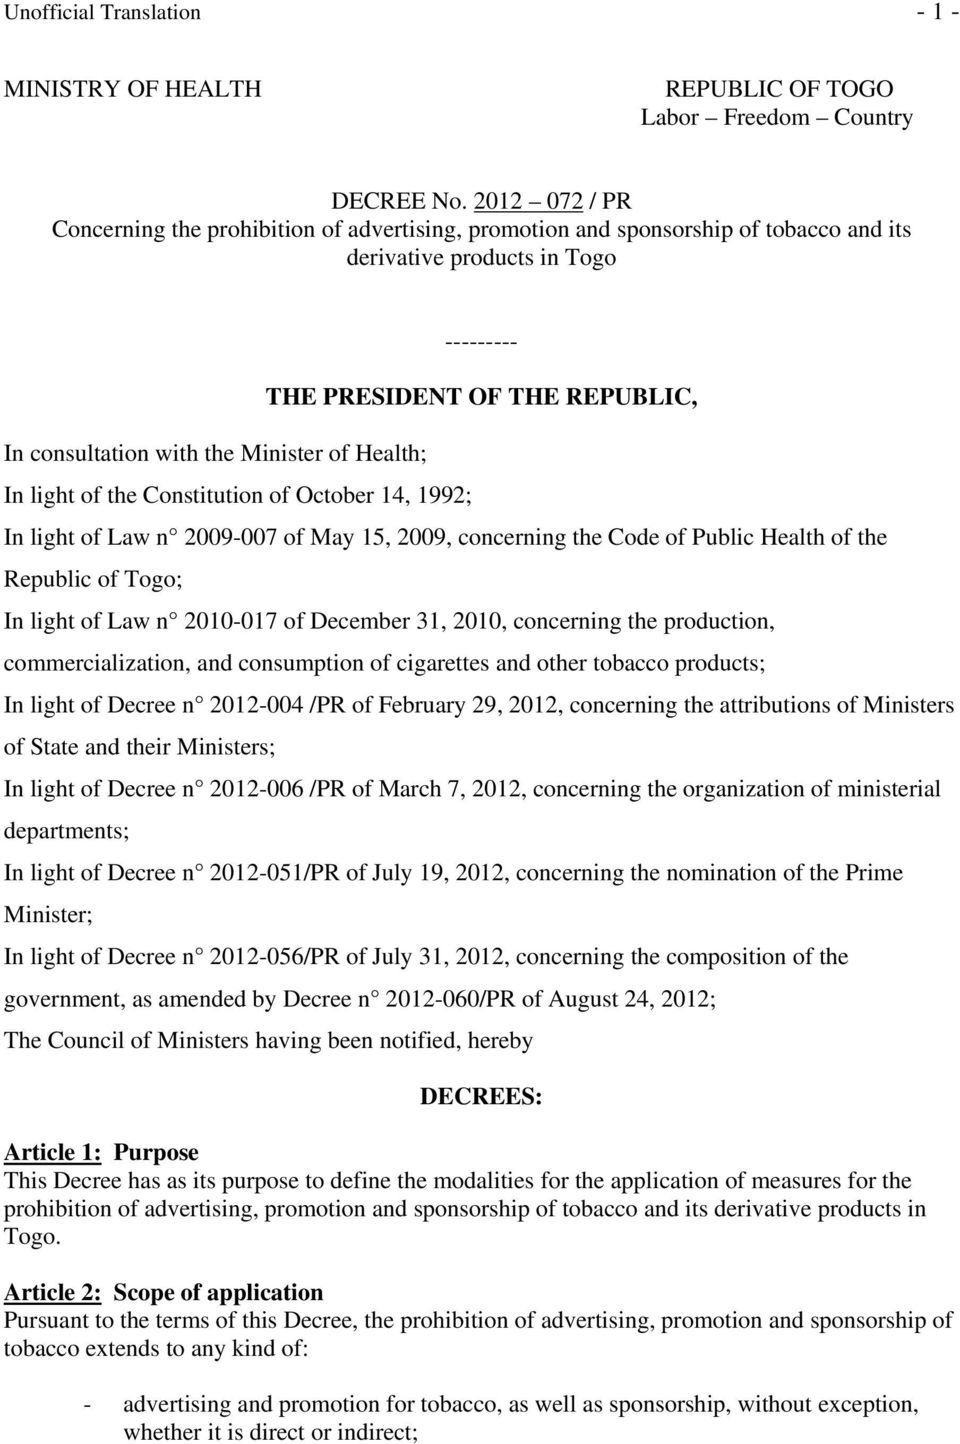 Constitution of October 14, 1992; --------- THE PRESIDENT OF THE REPUBLIC, In light of Law n 2009-007 of May 15, 2009, concerning the Code of Public Health of the Republic of Togo; In light of Law n